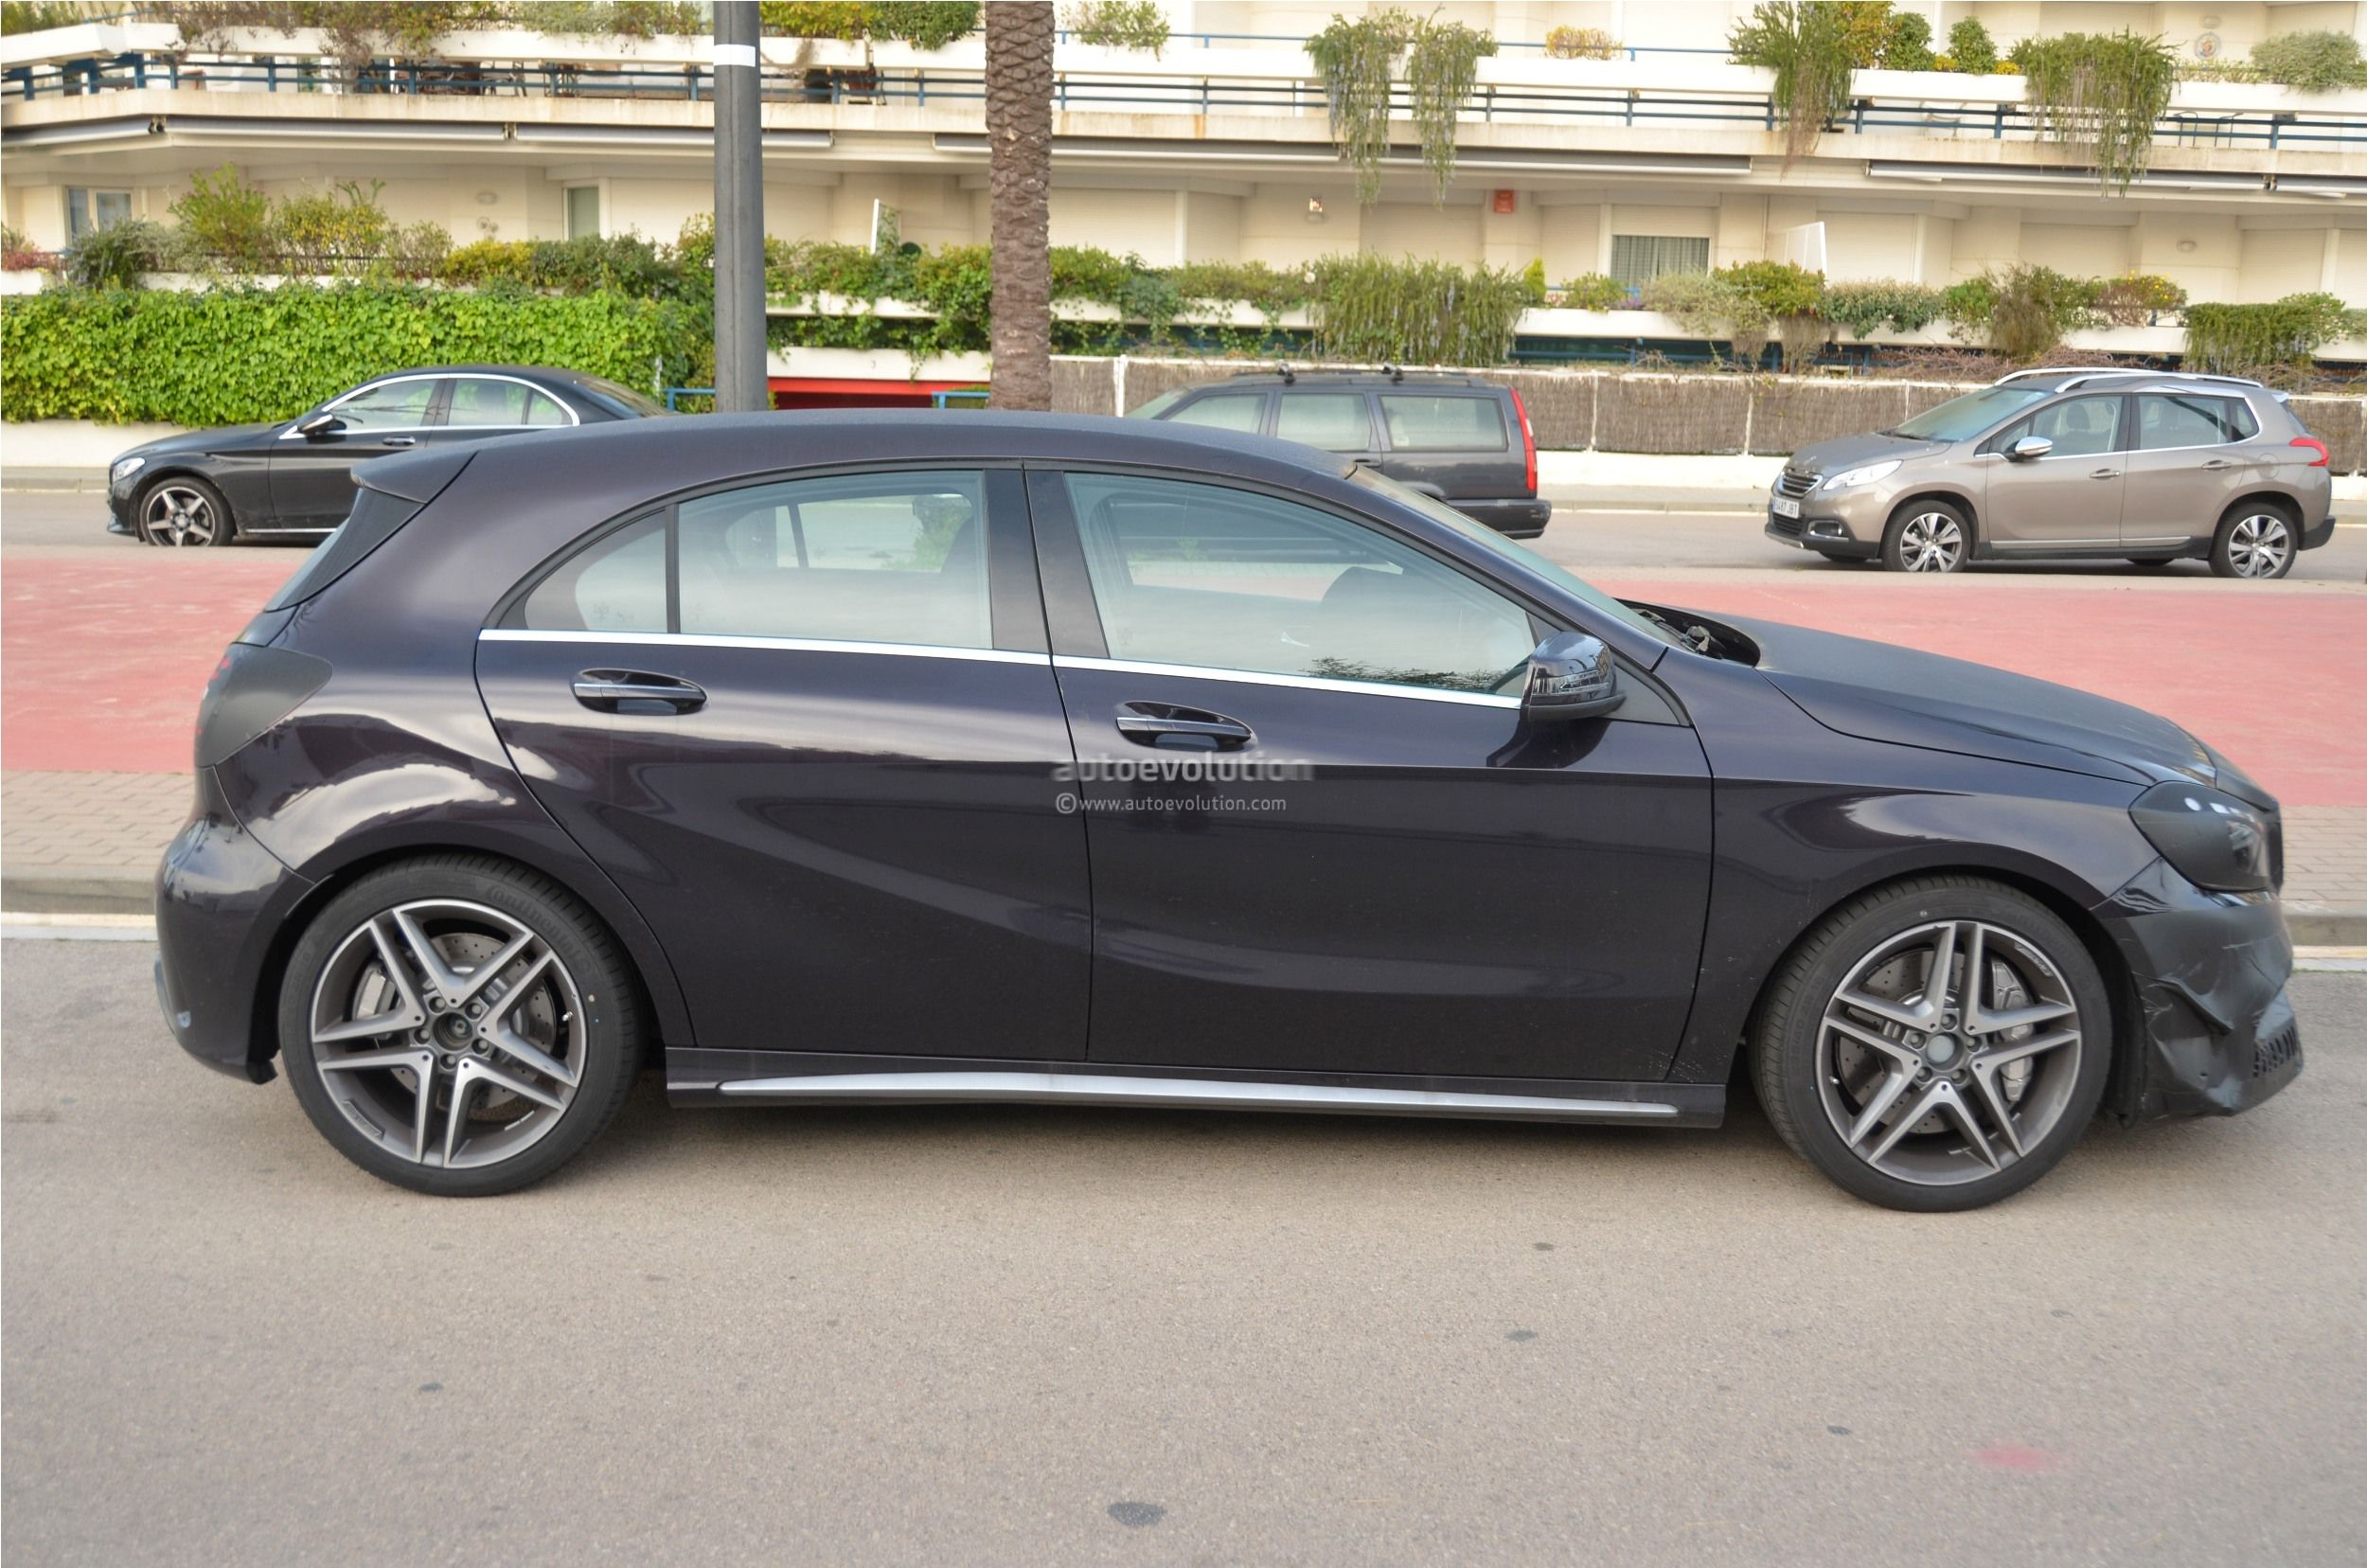 2016 - [Mercedes] Classe A restylée - Page 5 2016-mercedes-benz-a-45-amg-facelift-spied-photo-gallery_9